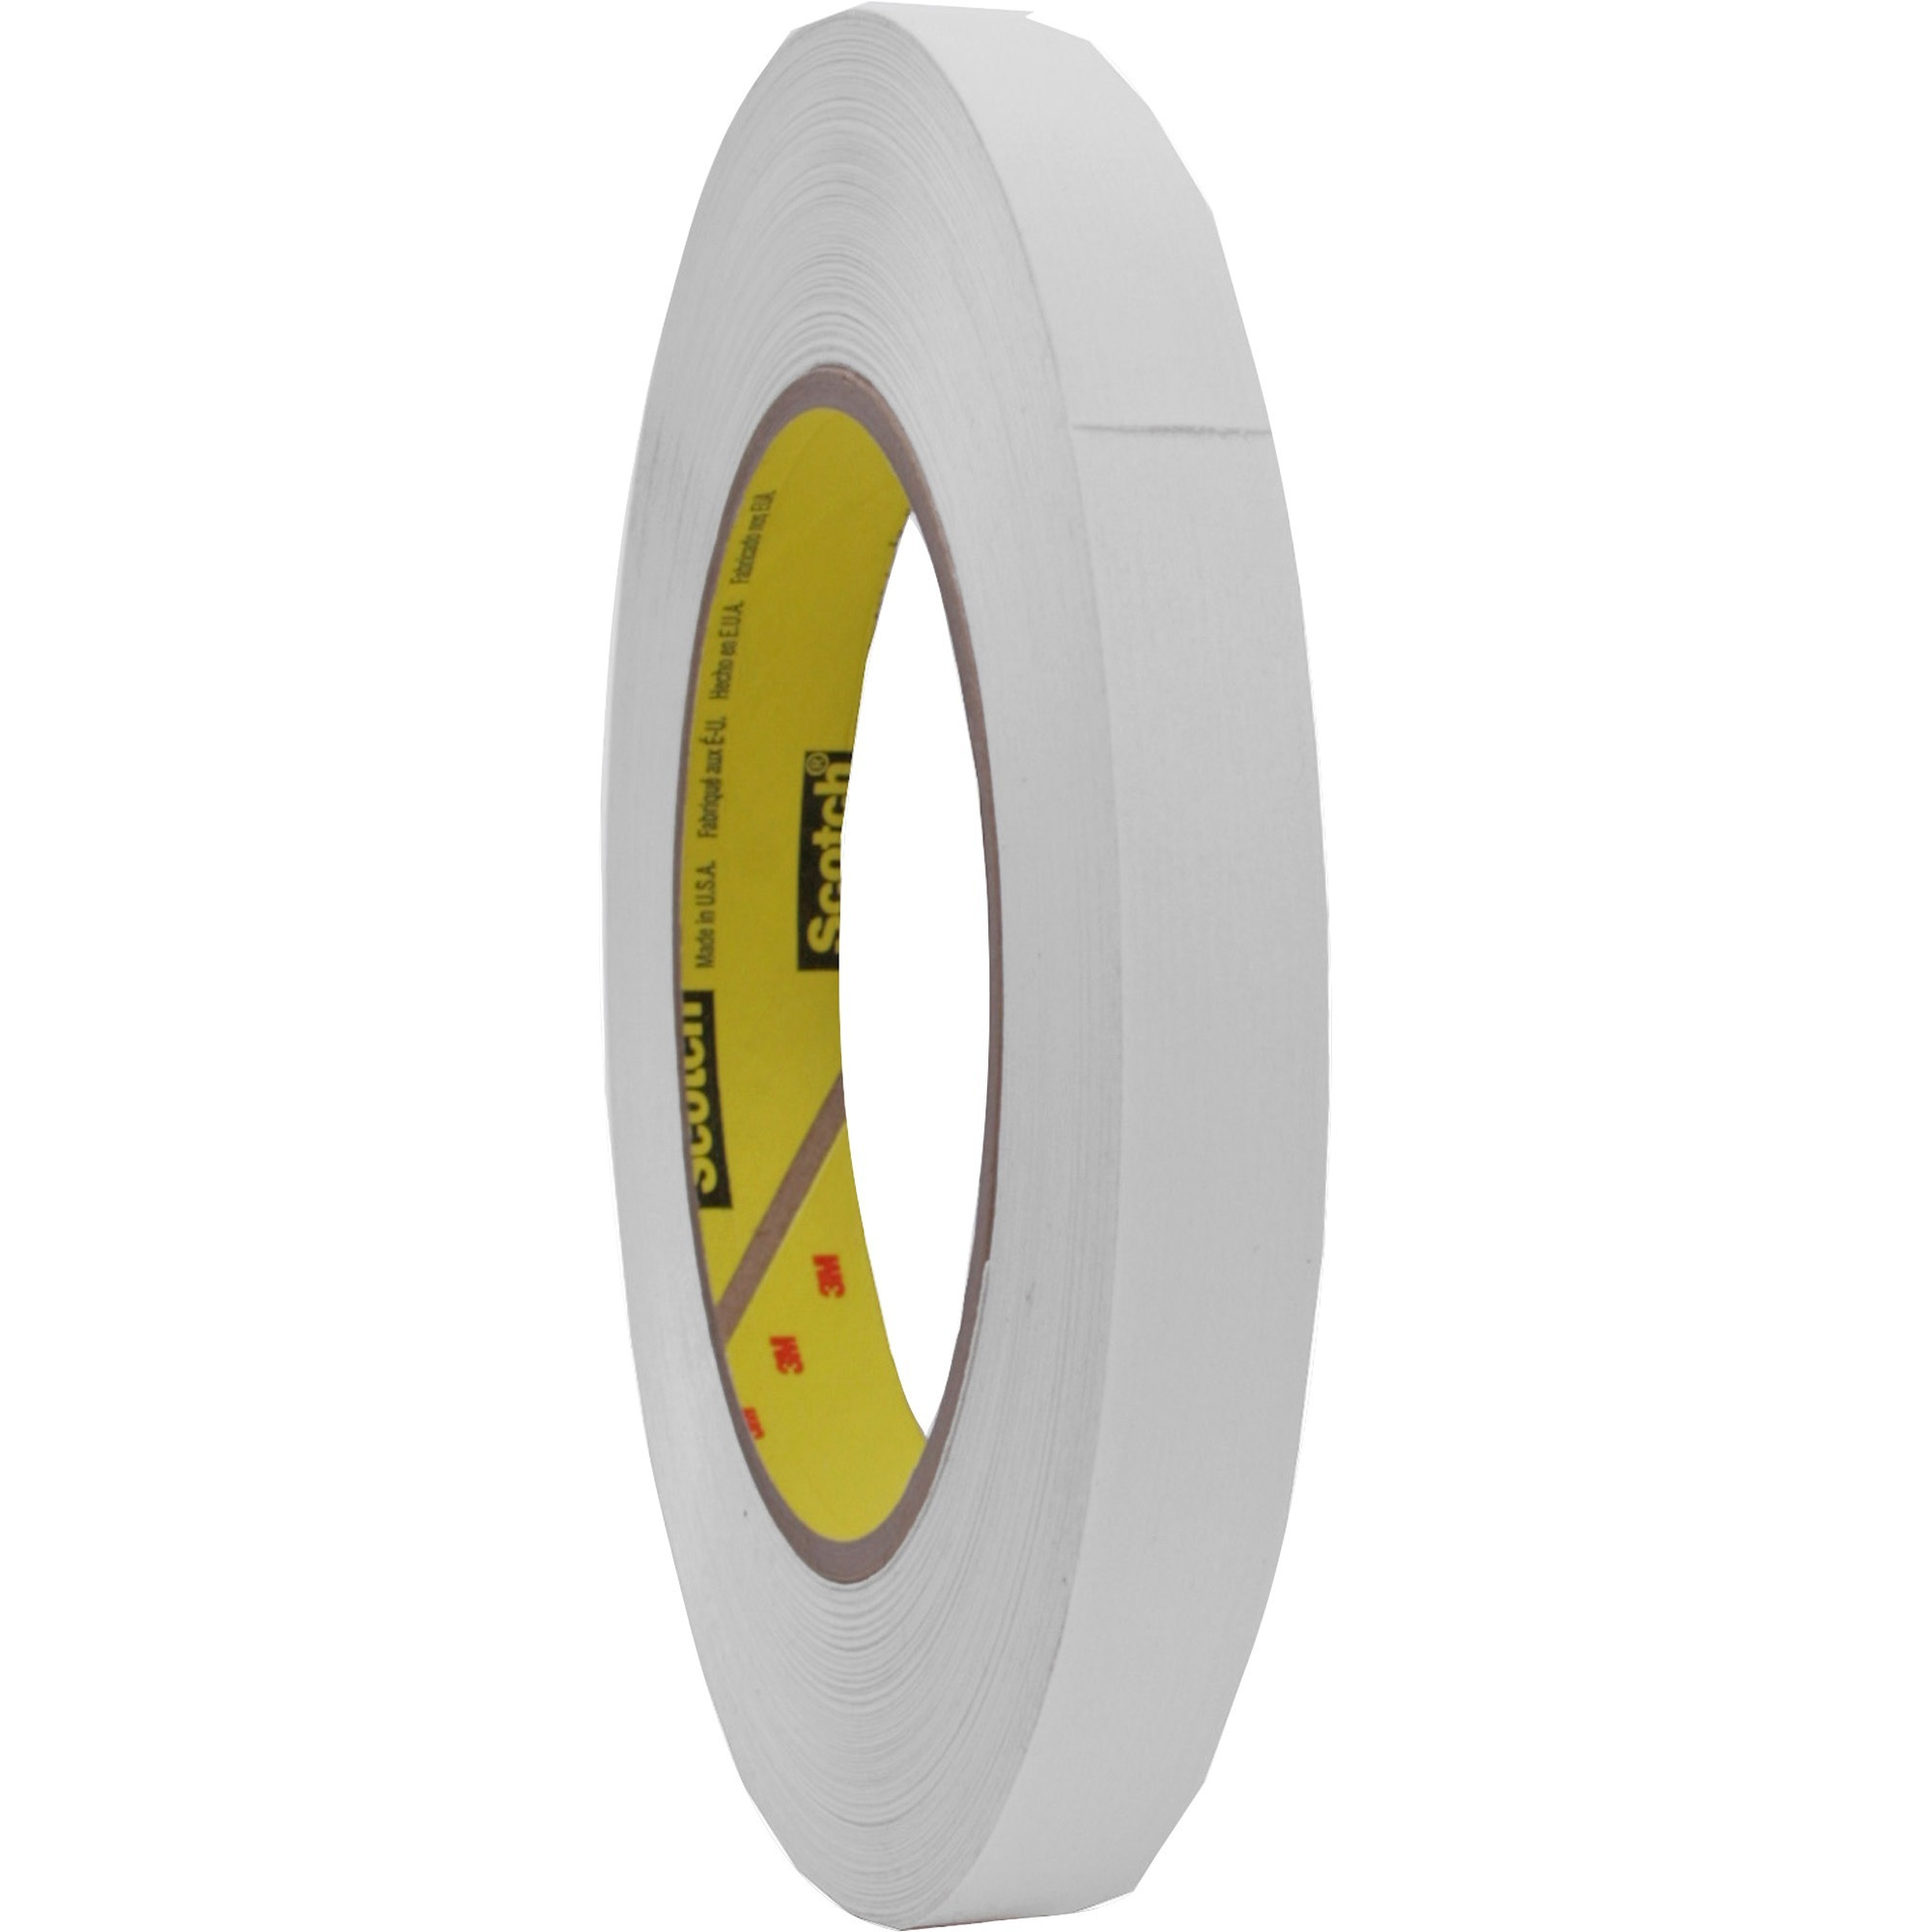 "256 Printable Flatback Paper Tape, 1/2"" x 60yds, 3"" Core, White"